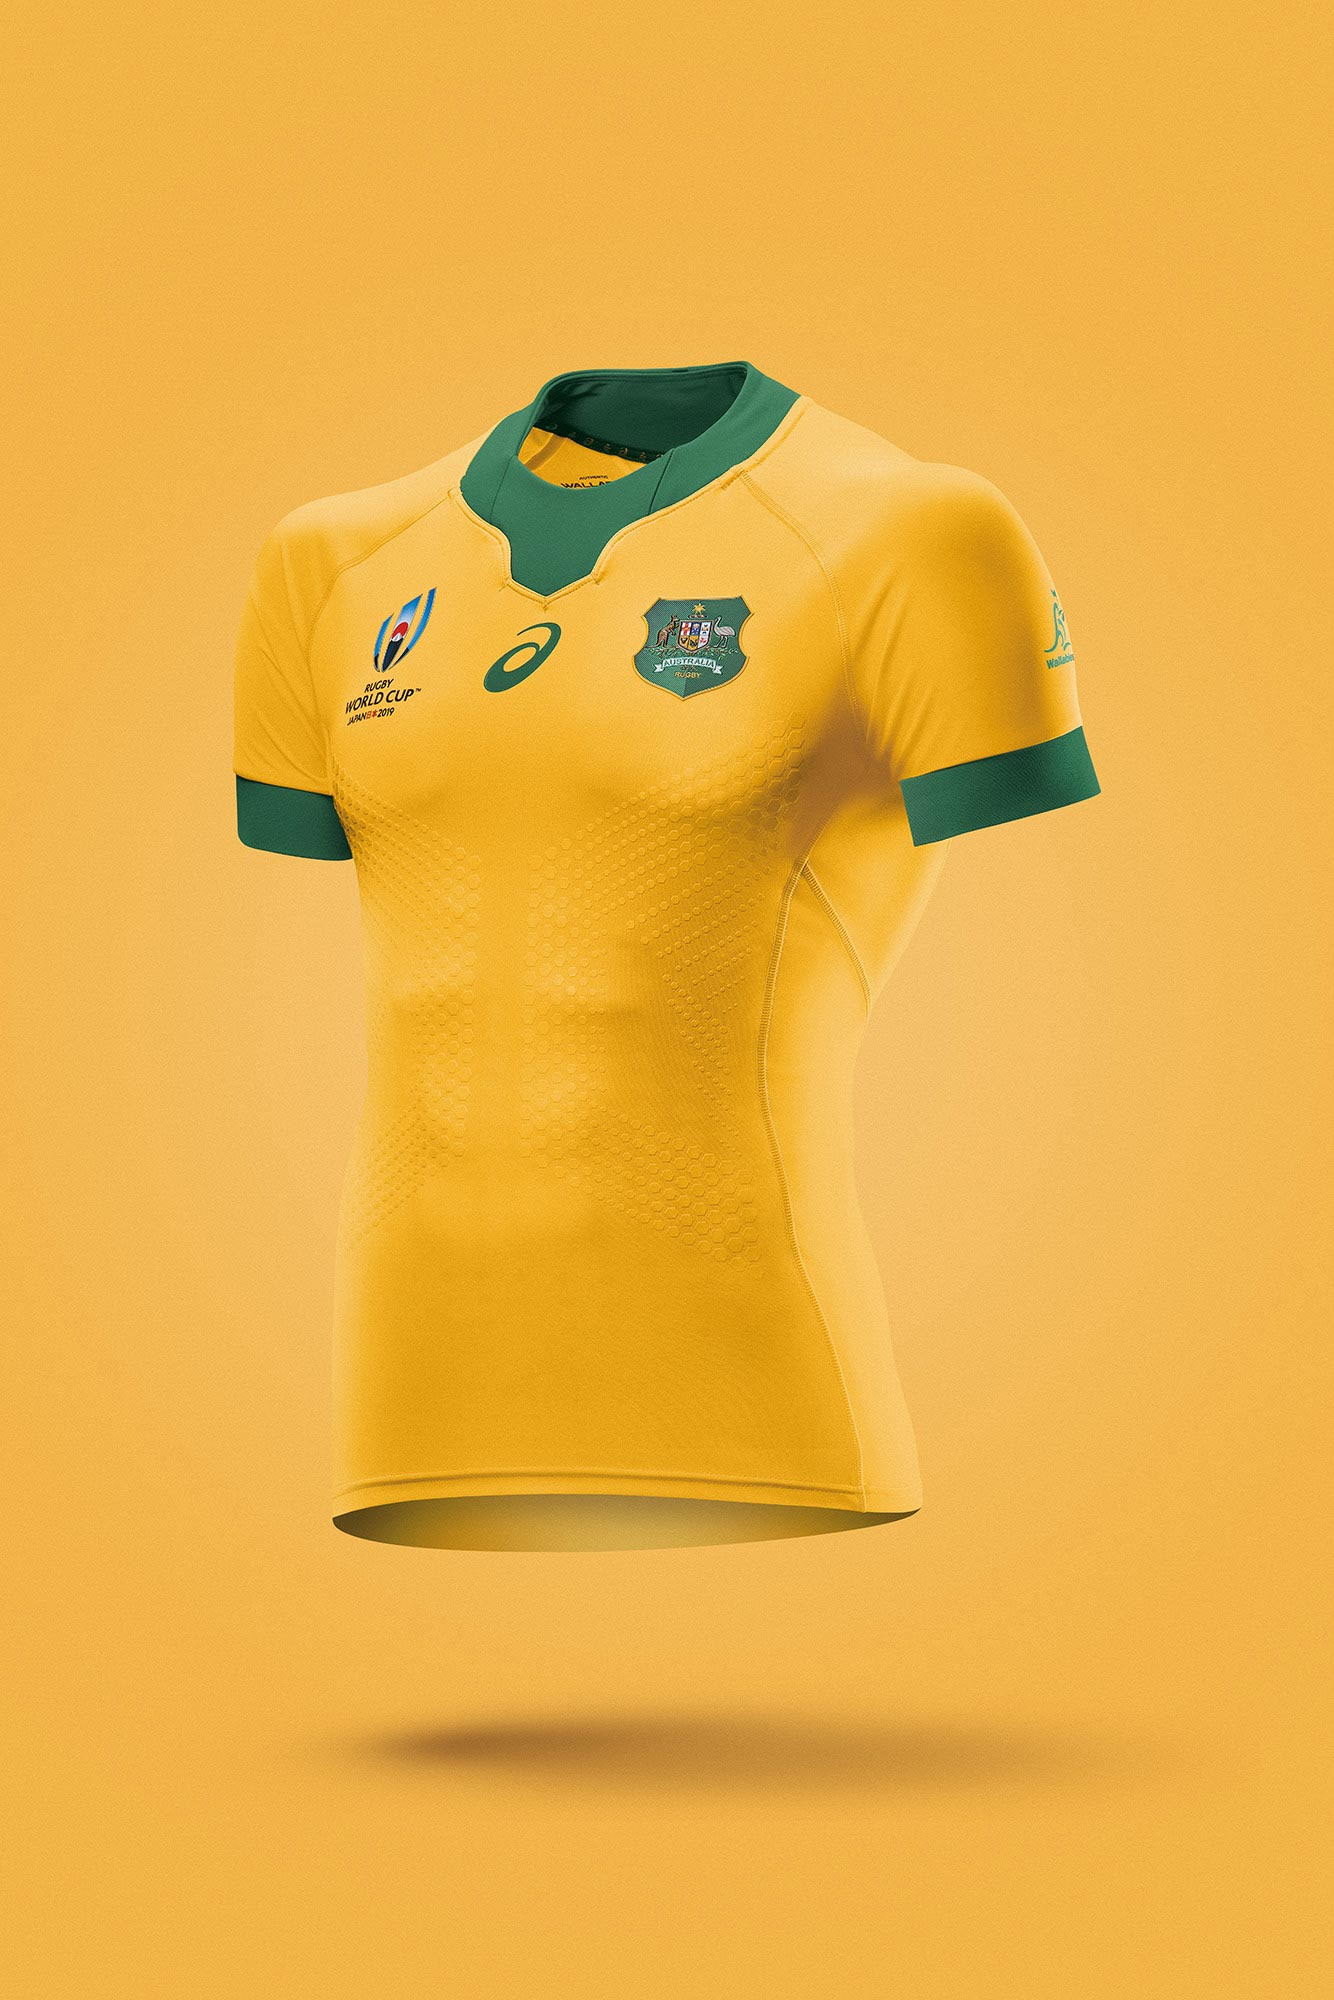 asics world cup rugby jersey photographed by product photographer Smith And Daniels